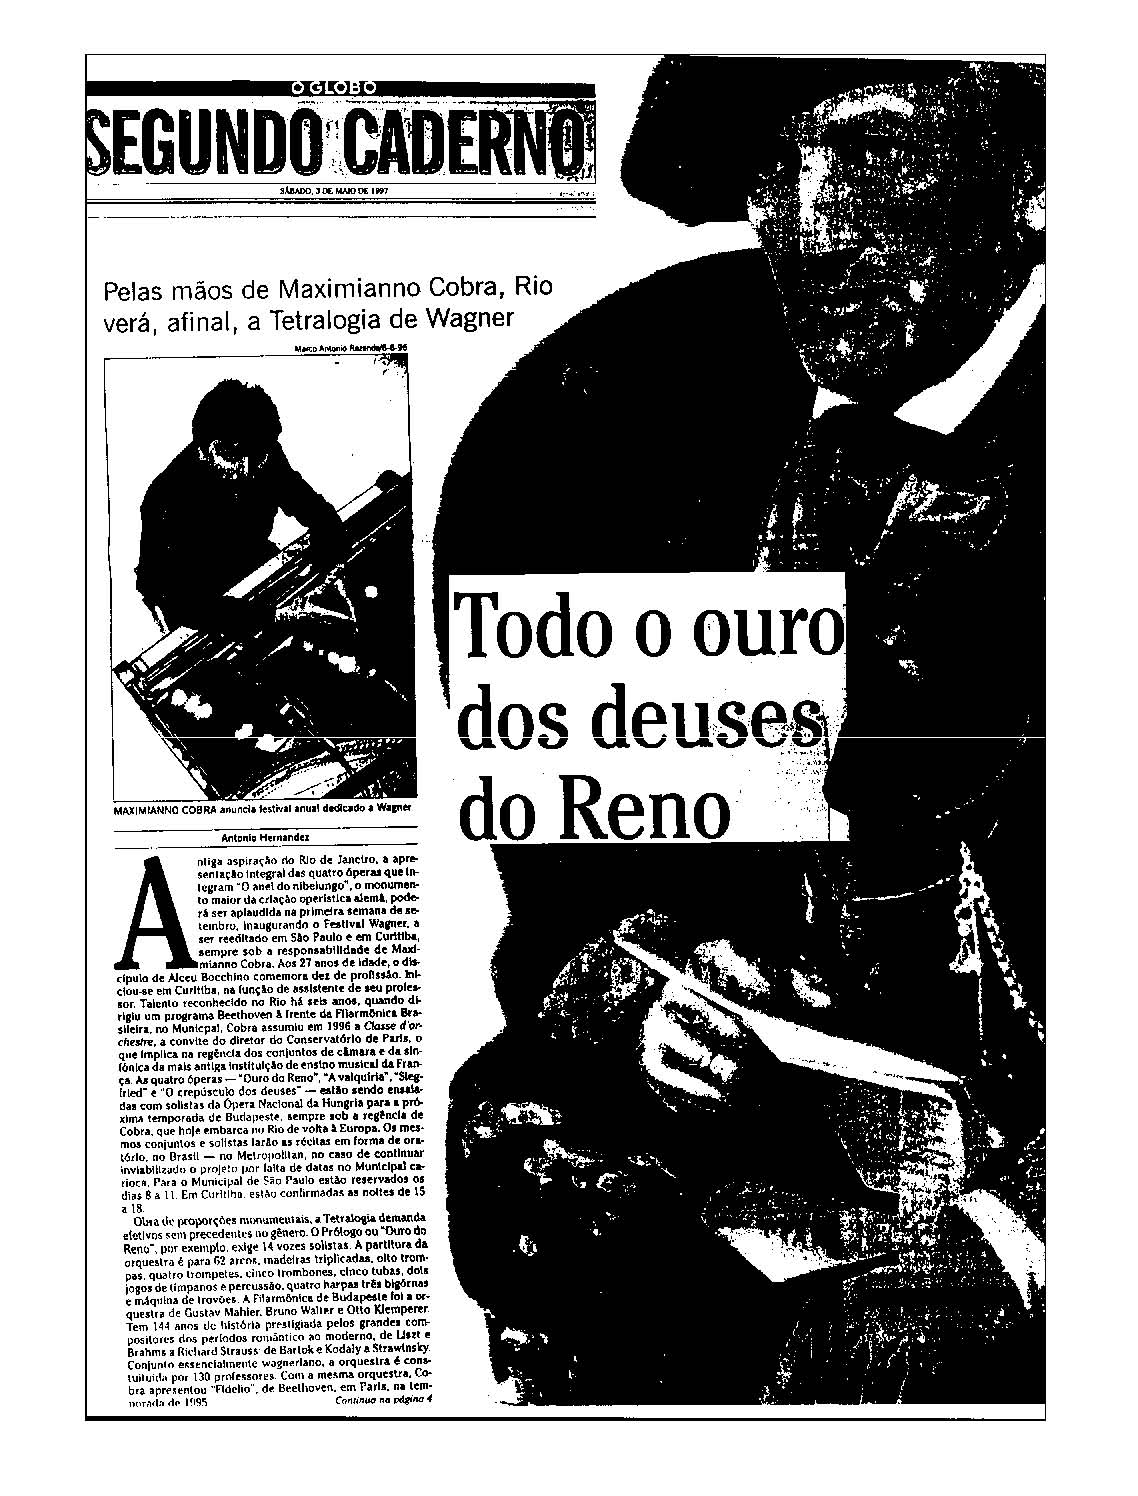 Press-book: a) Press-book (Part One - Brazil)